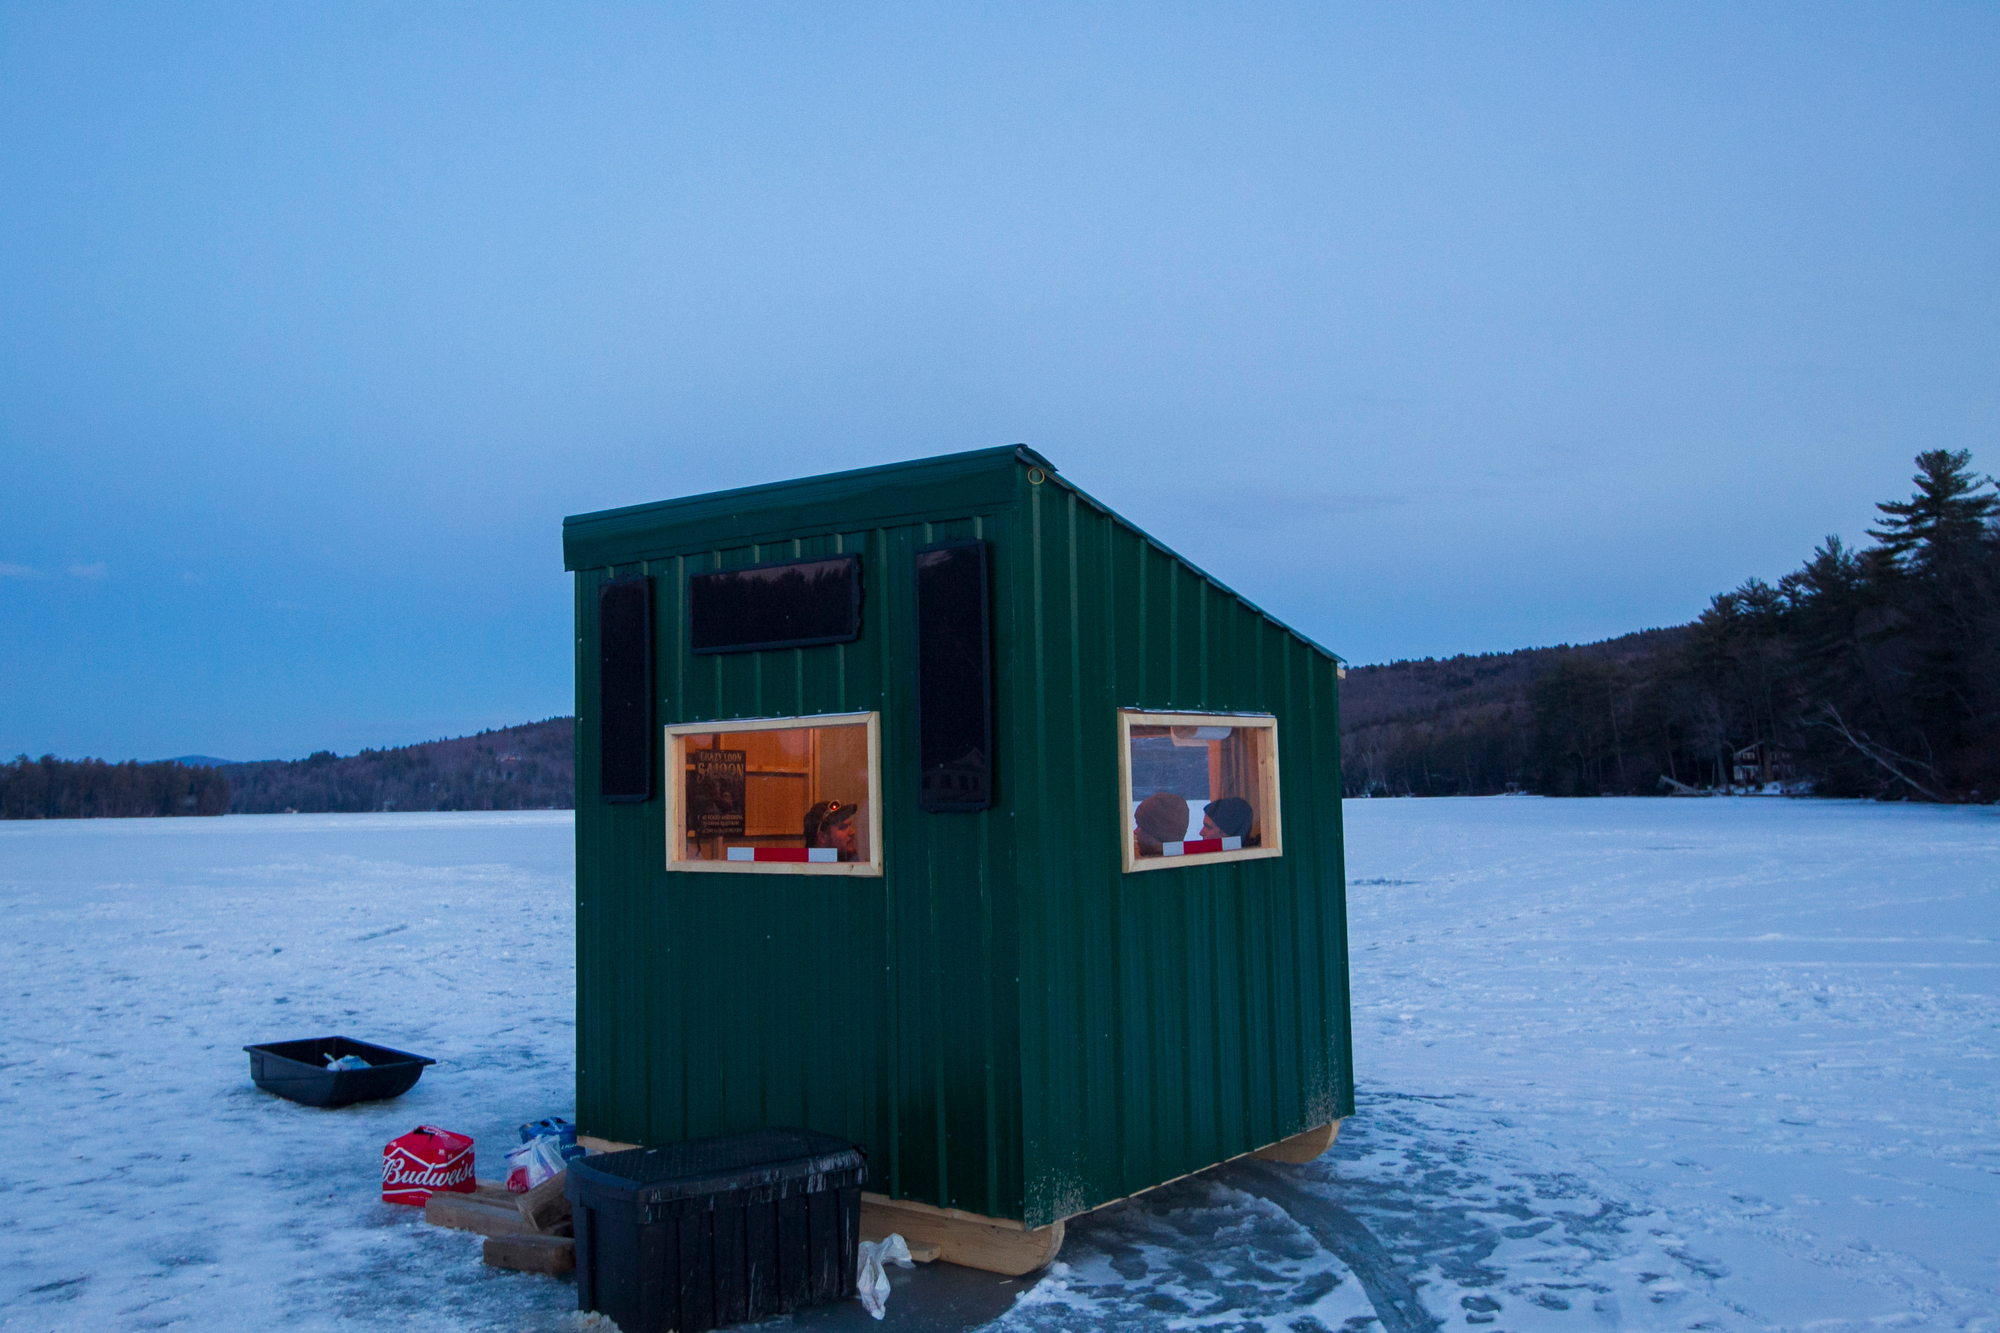 New Hampshire resident Duncan Wentworth (L) hangs  out in a friends ice fishing bob house on Little Squam Lake in Ashland, New Hampshire on February 7, 2016. New Hampshire will hold the first in the nation primary on February 9th.